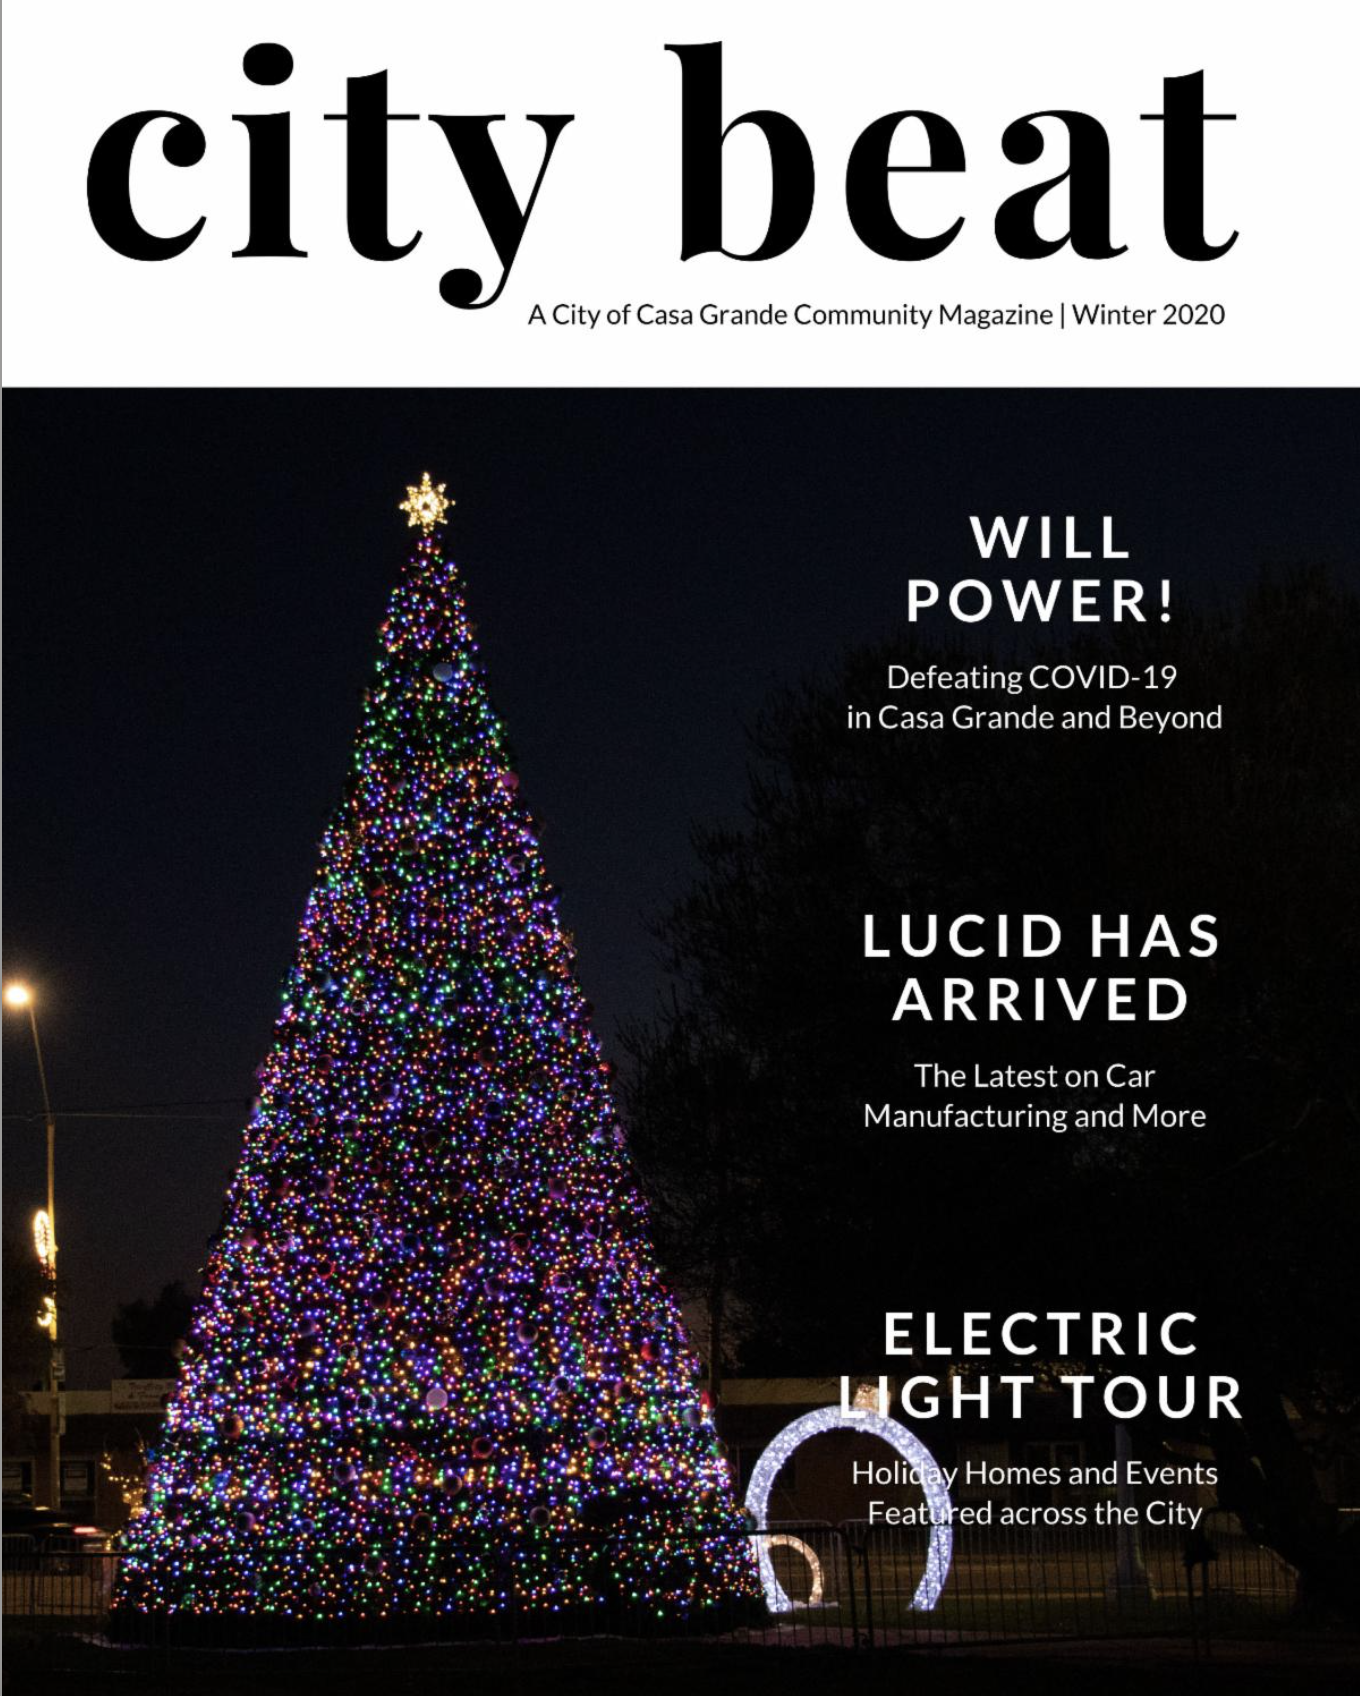 City Beat Winter 2020